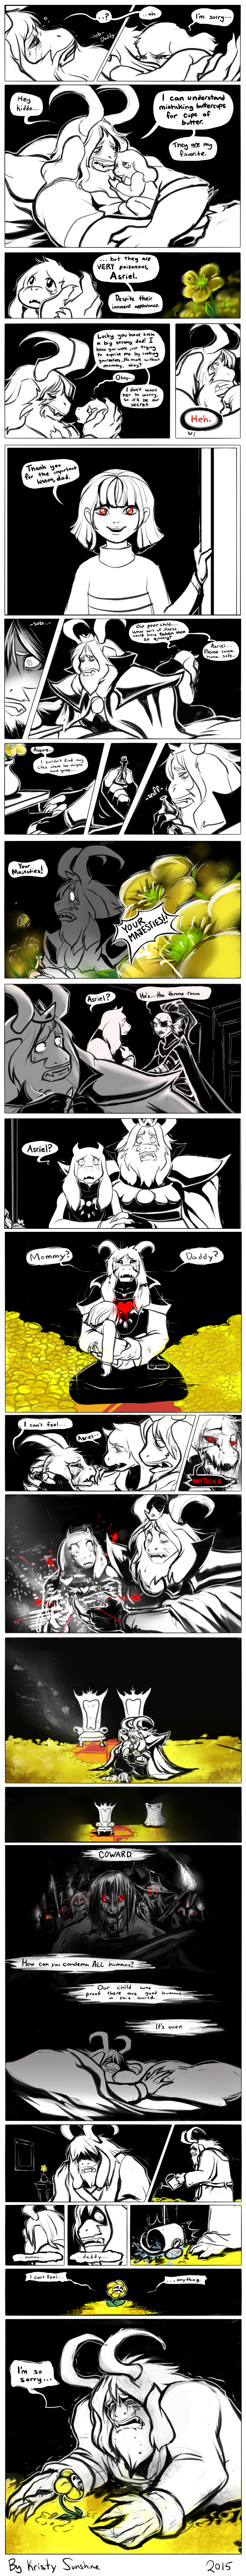 Asriel Dreemurr Comic undertale image thread | page 68 | sufficient velocity